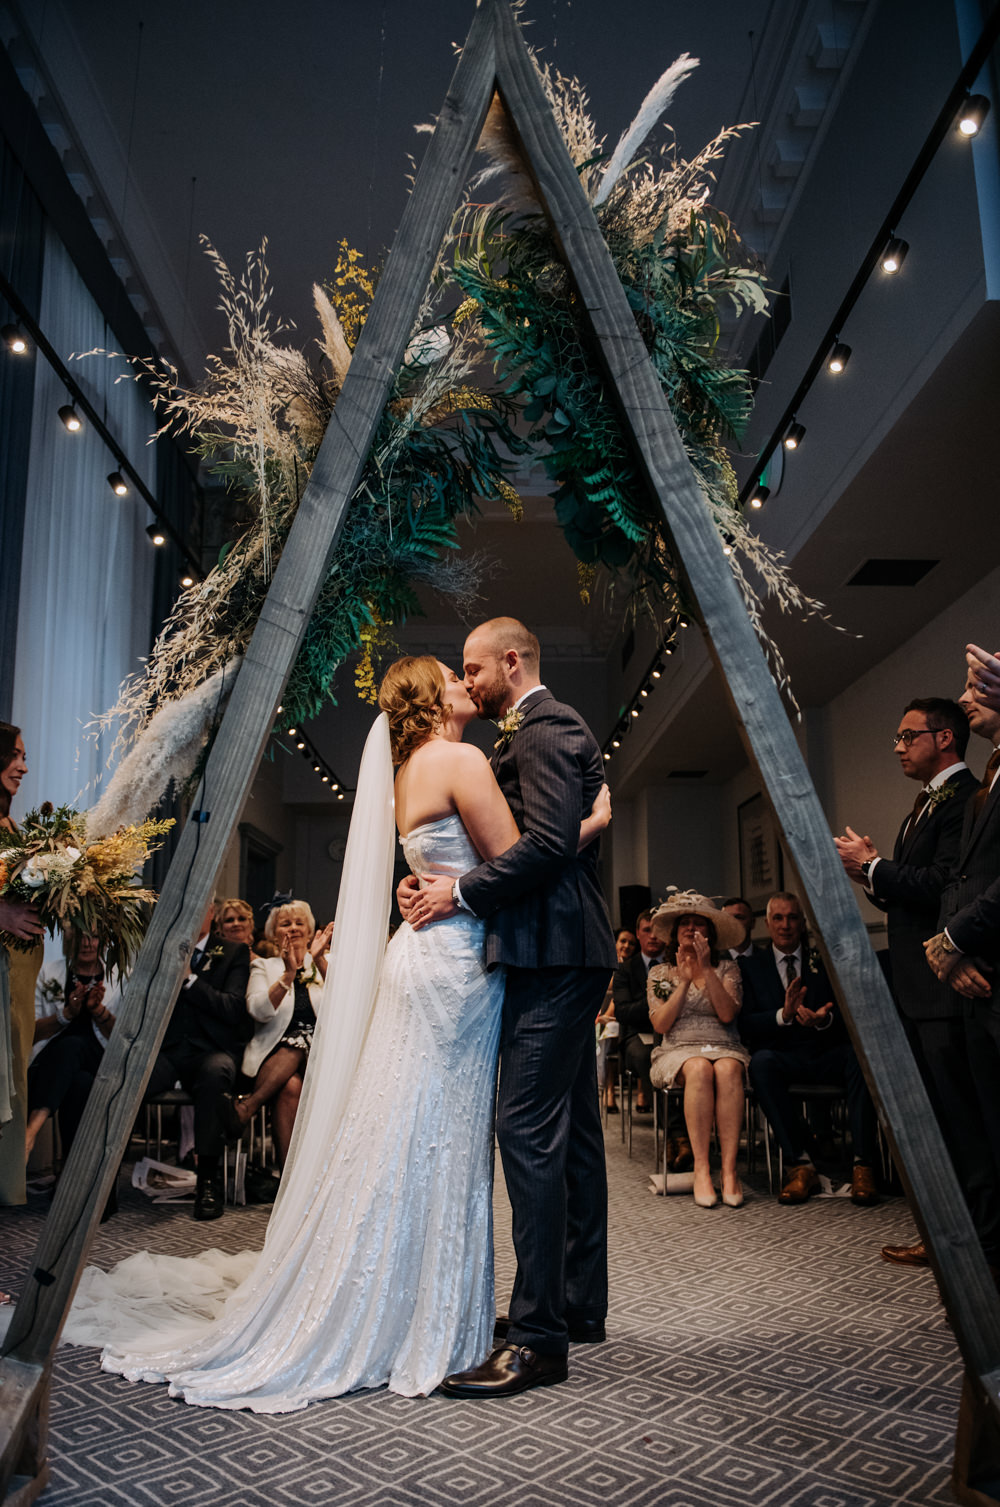 Bride Bridal Strapless Sequin Embellished Dress Gown Train Veil Navy Suit Groom Wildflower Bouquet Triangle Arbour Foliage Manchester Wedding Kazooieloki Photography